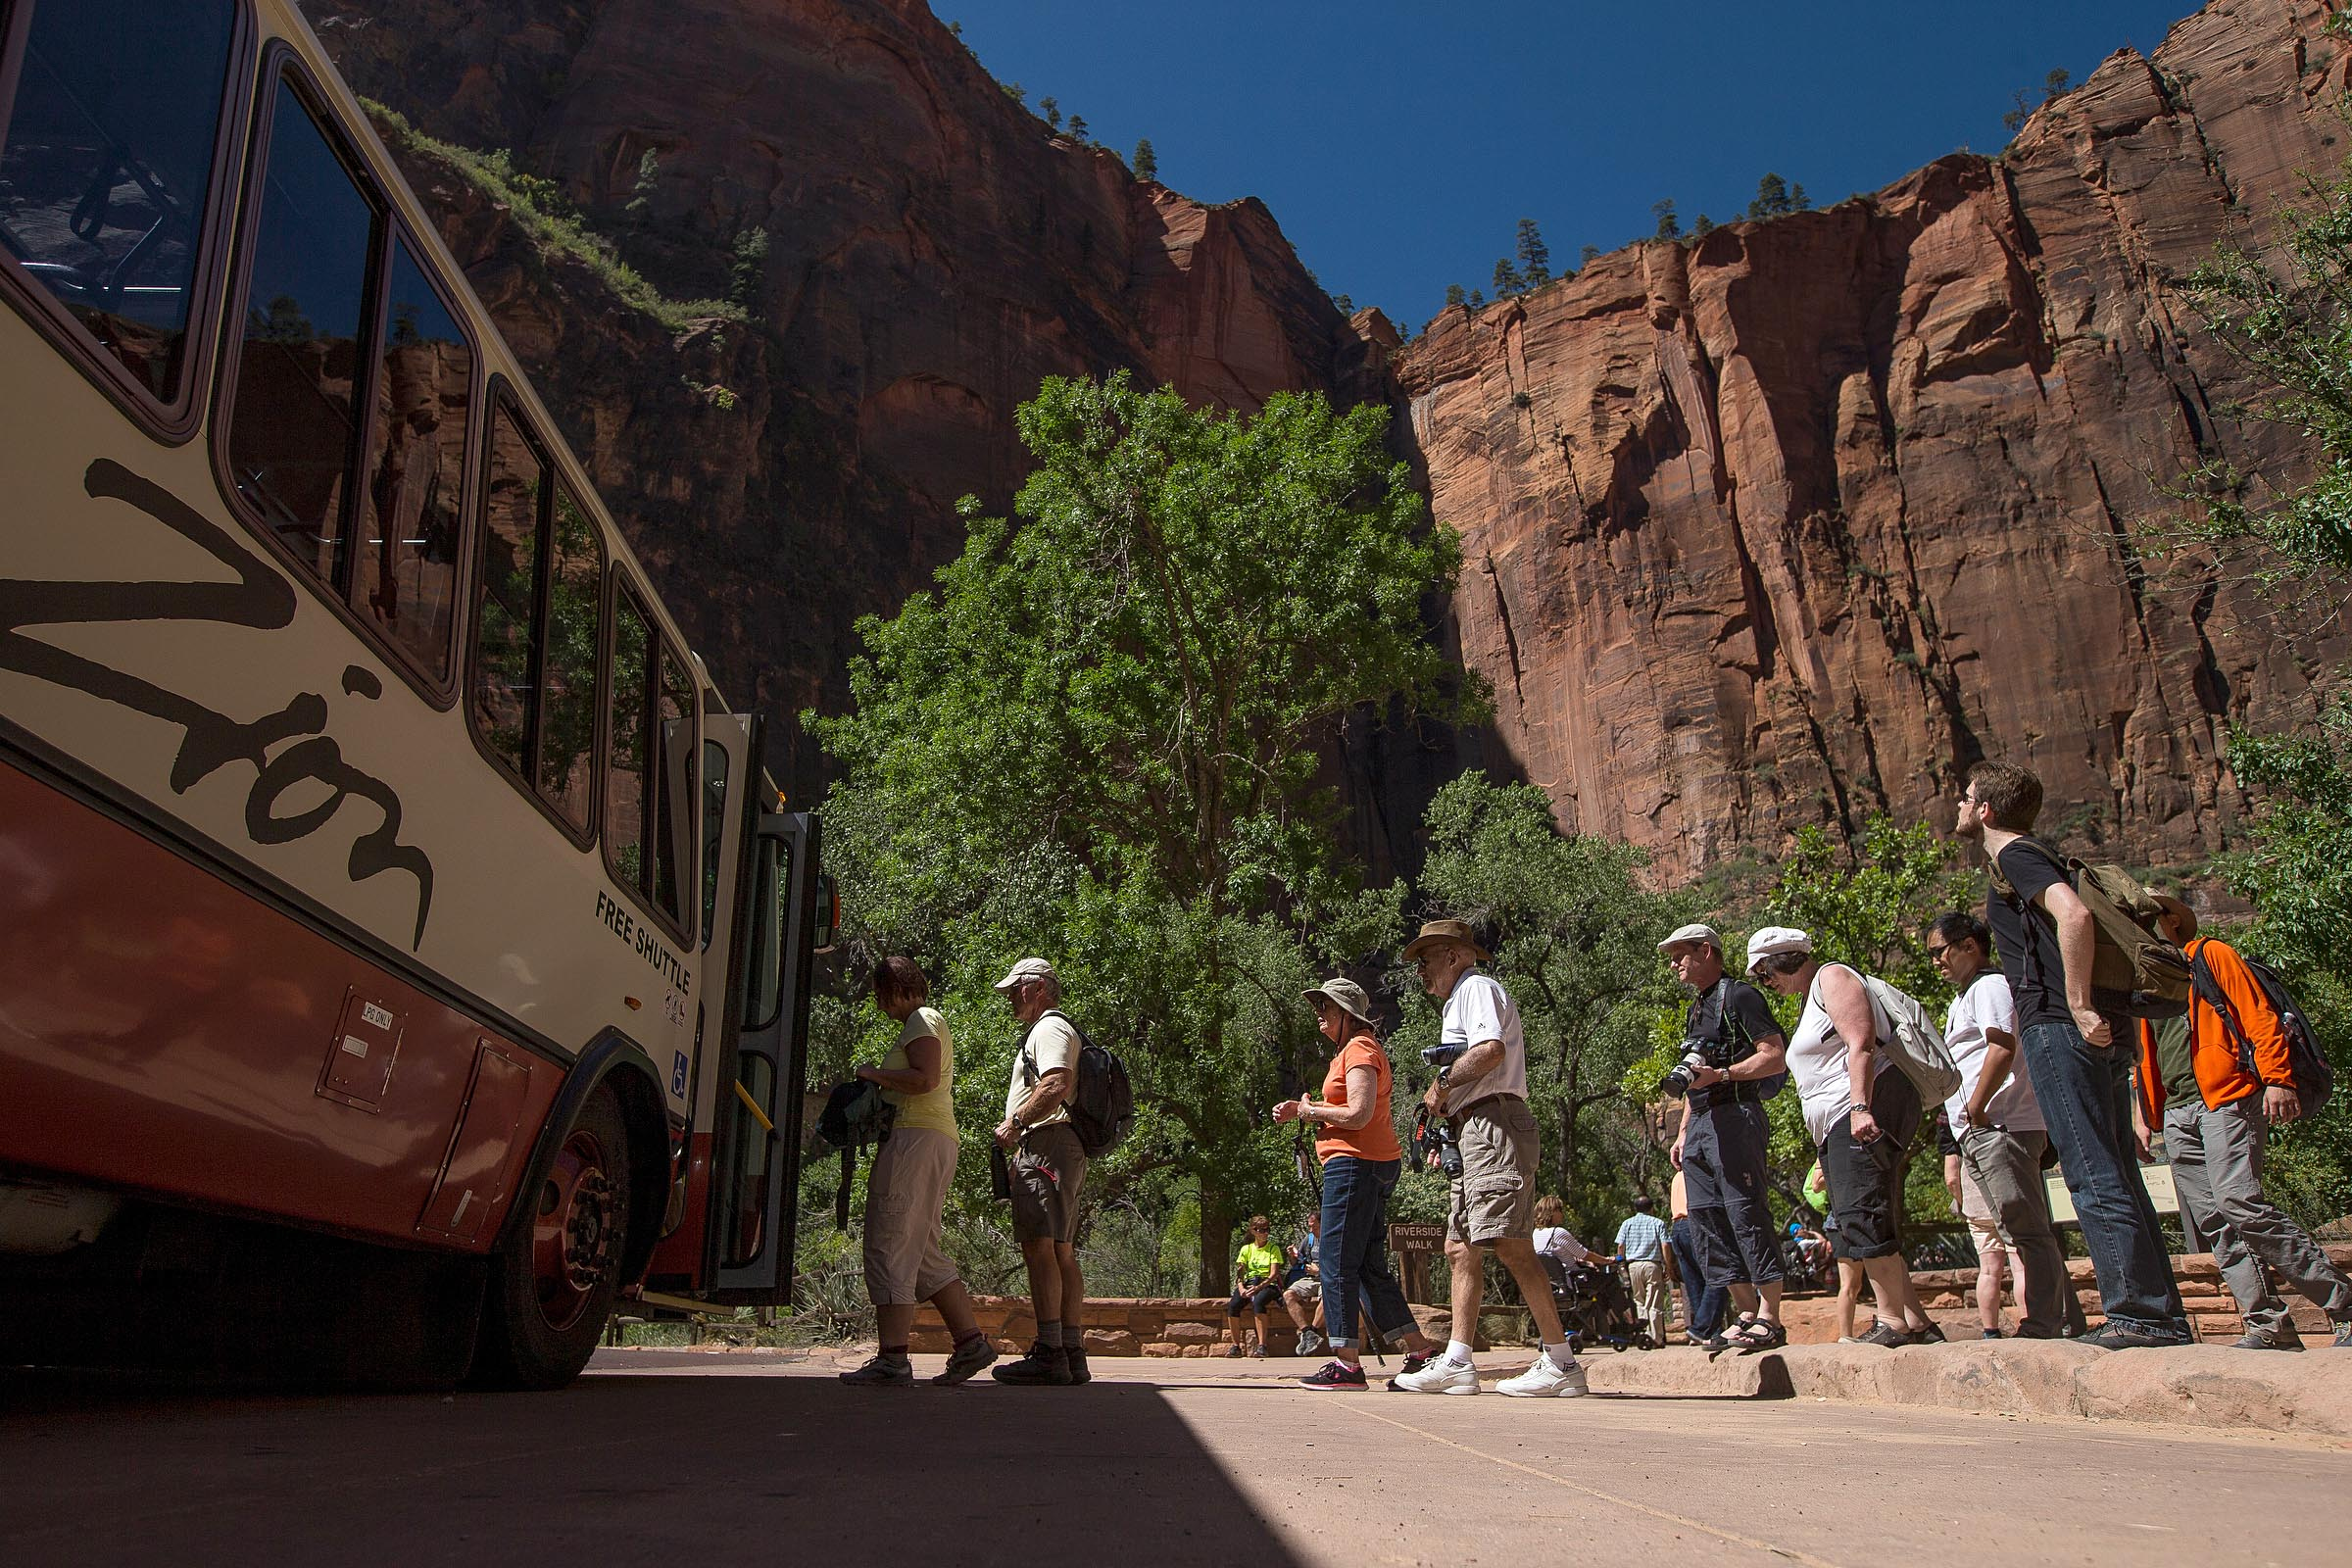 People board a shuttle in Zion National Park on Thursday, Sept. 15, 2016. The park's free shuttles ferry visitors between Springdale and the visitors center, as well as throughout the park, in an effort to alleviate traffic in Zion Canyon during the busy tourist season.